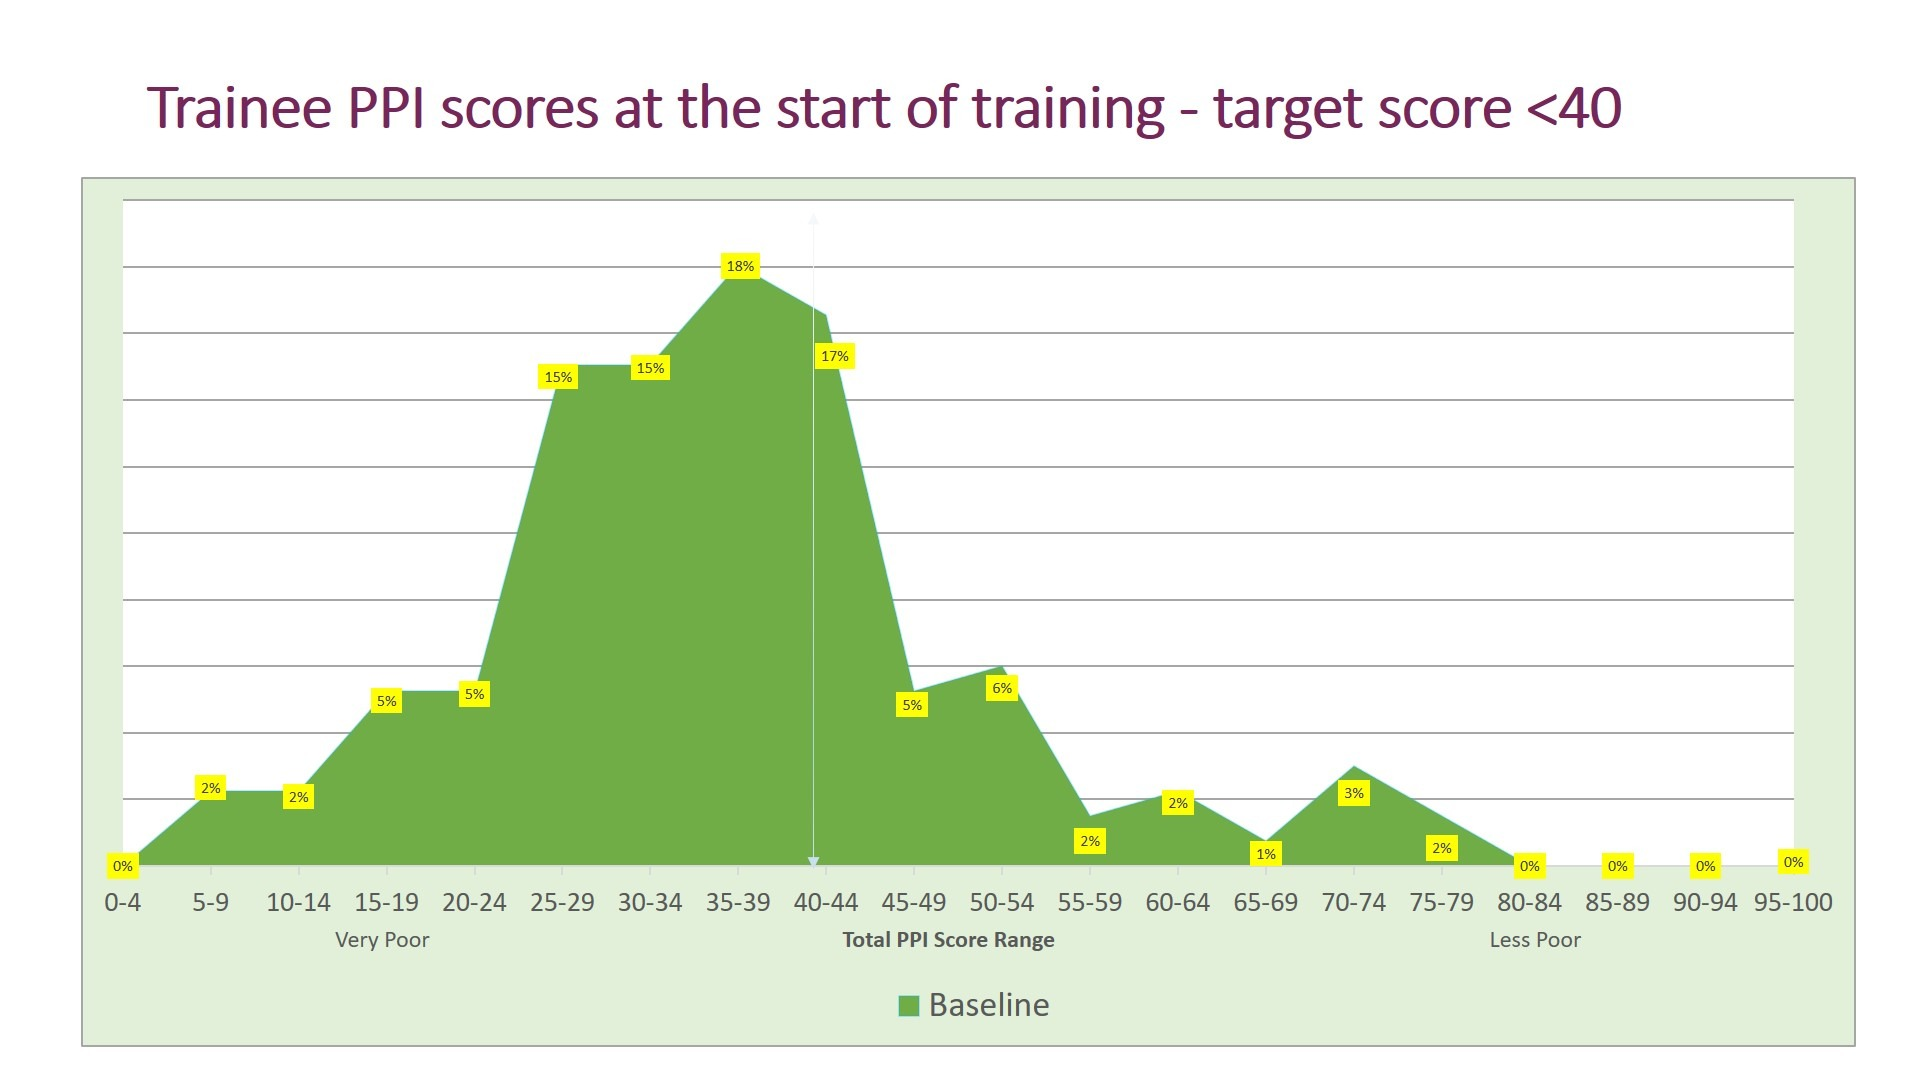 Graph showing rainee PPI scores at the start of training - 2020 Impact Study